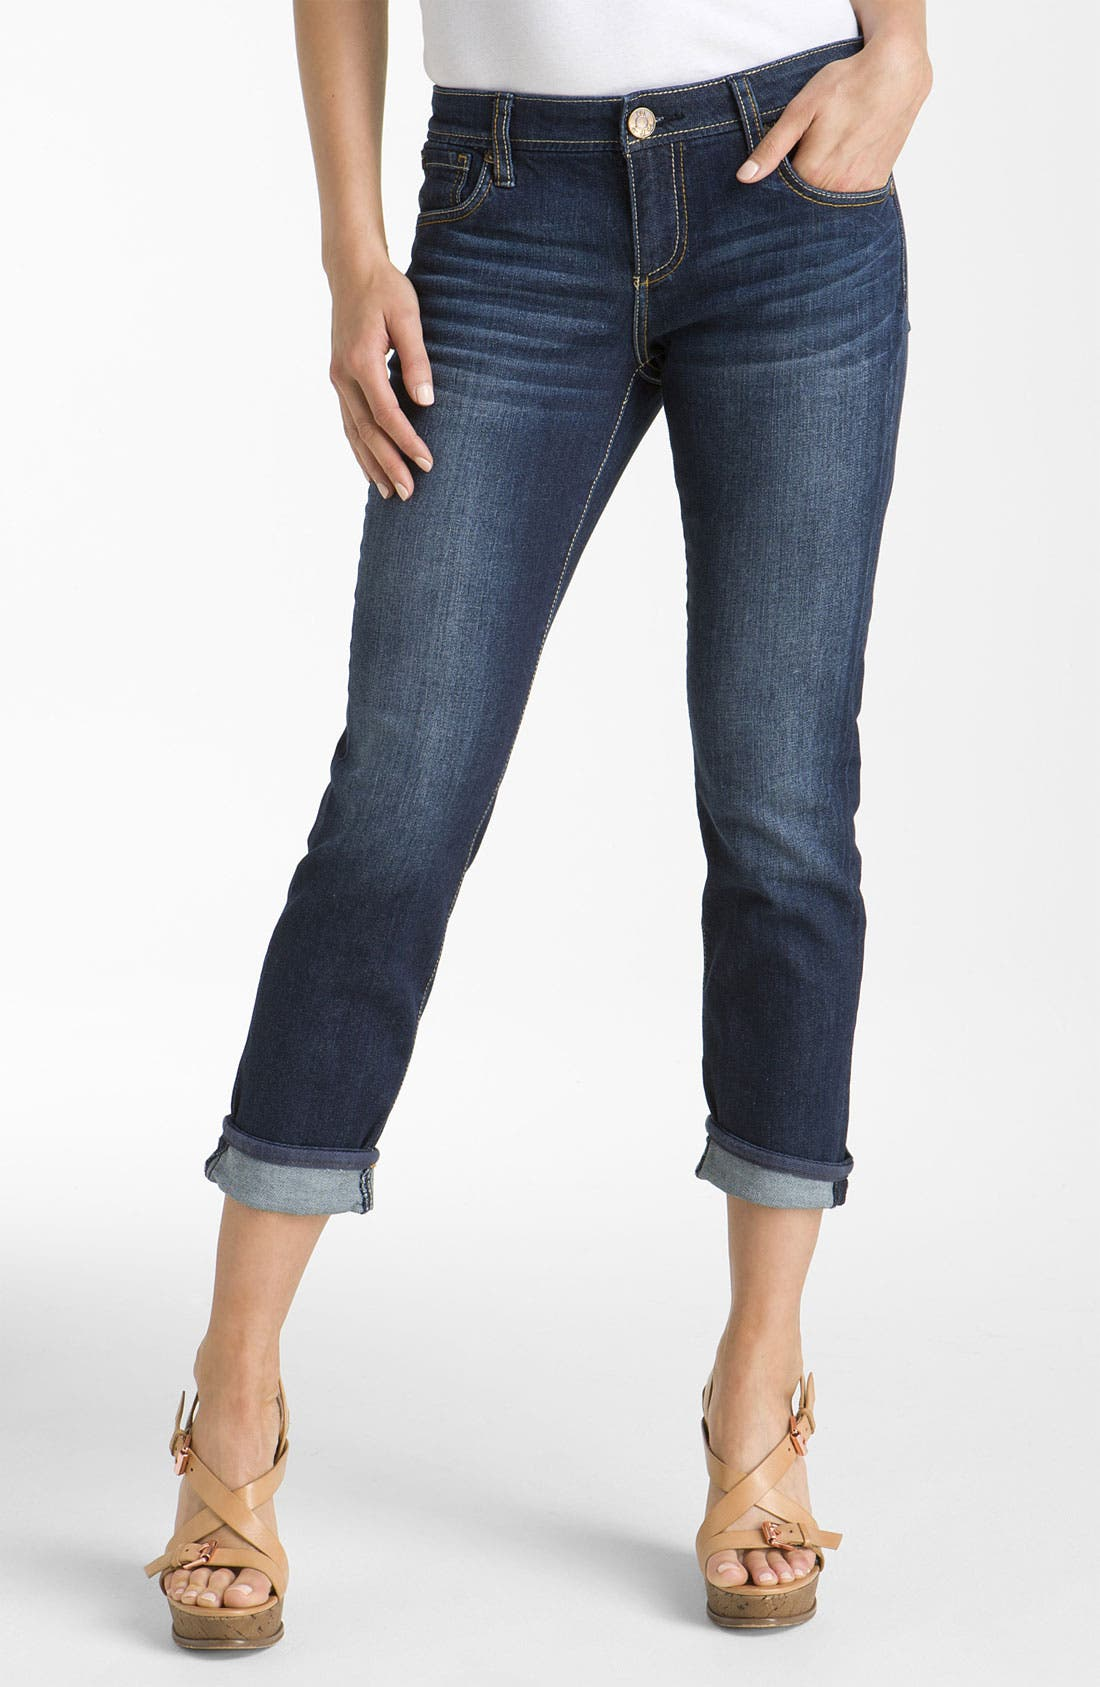 Alternate Image 1 Selected - KUT from the Kloth 'Catherine' Slim Boyfriend Jeans (Gratitude Wash)